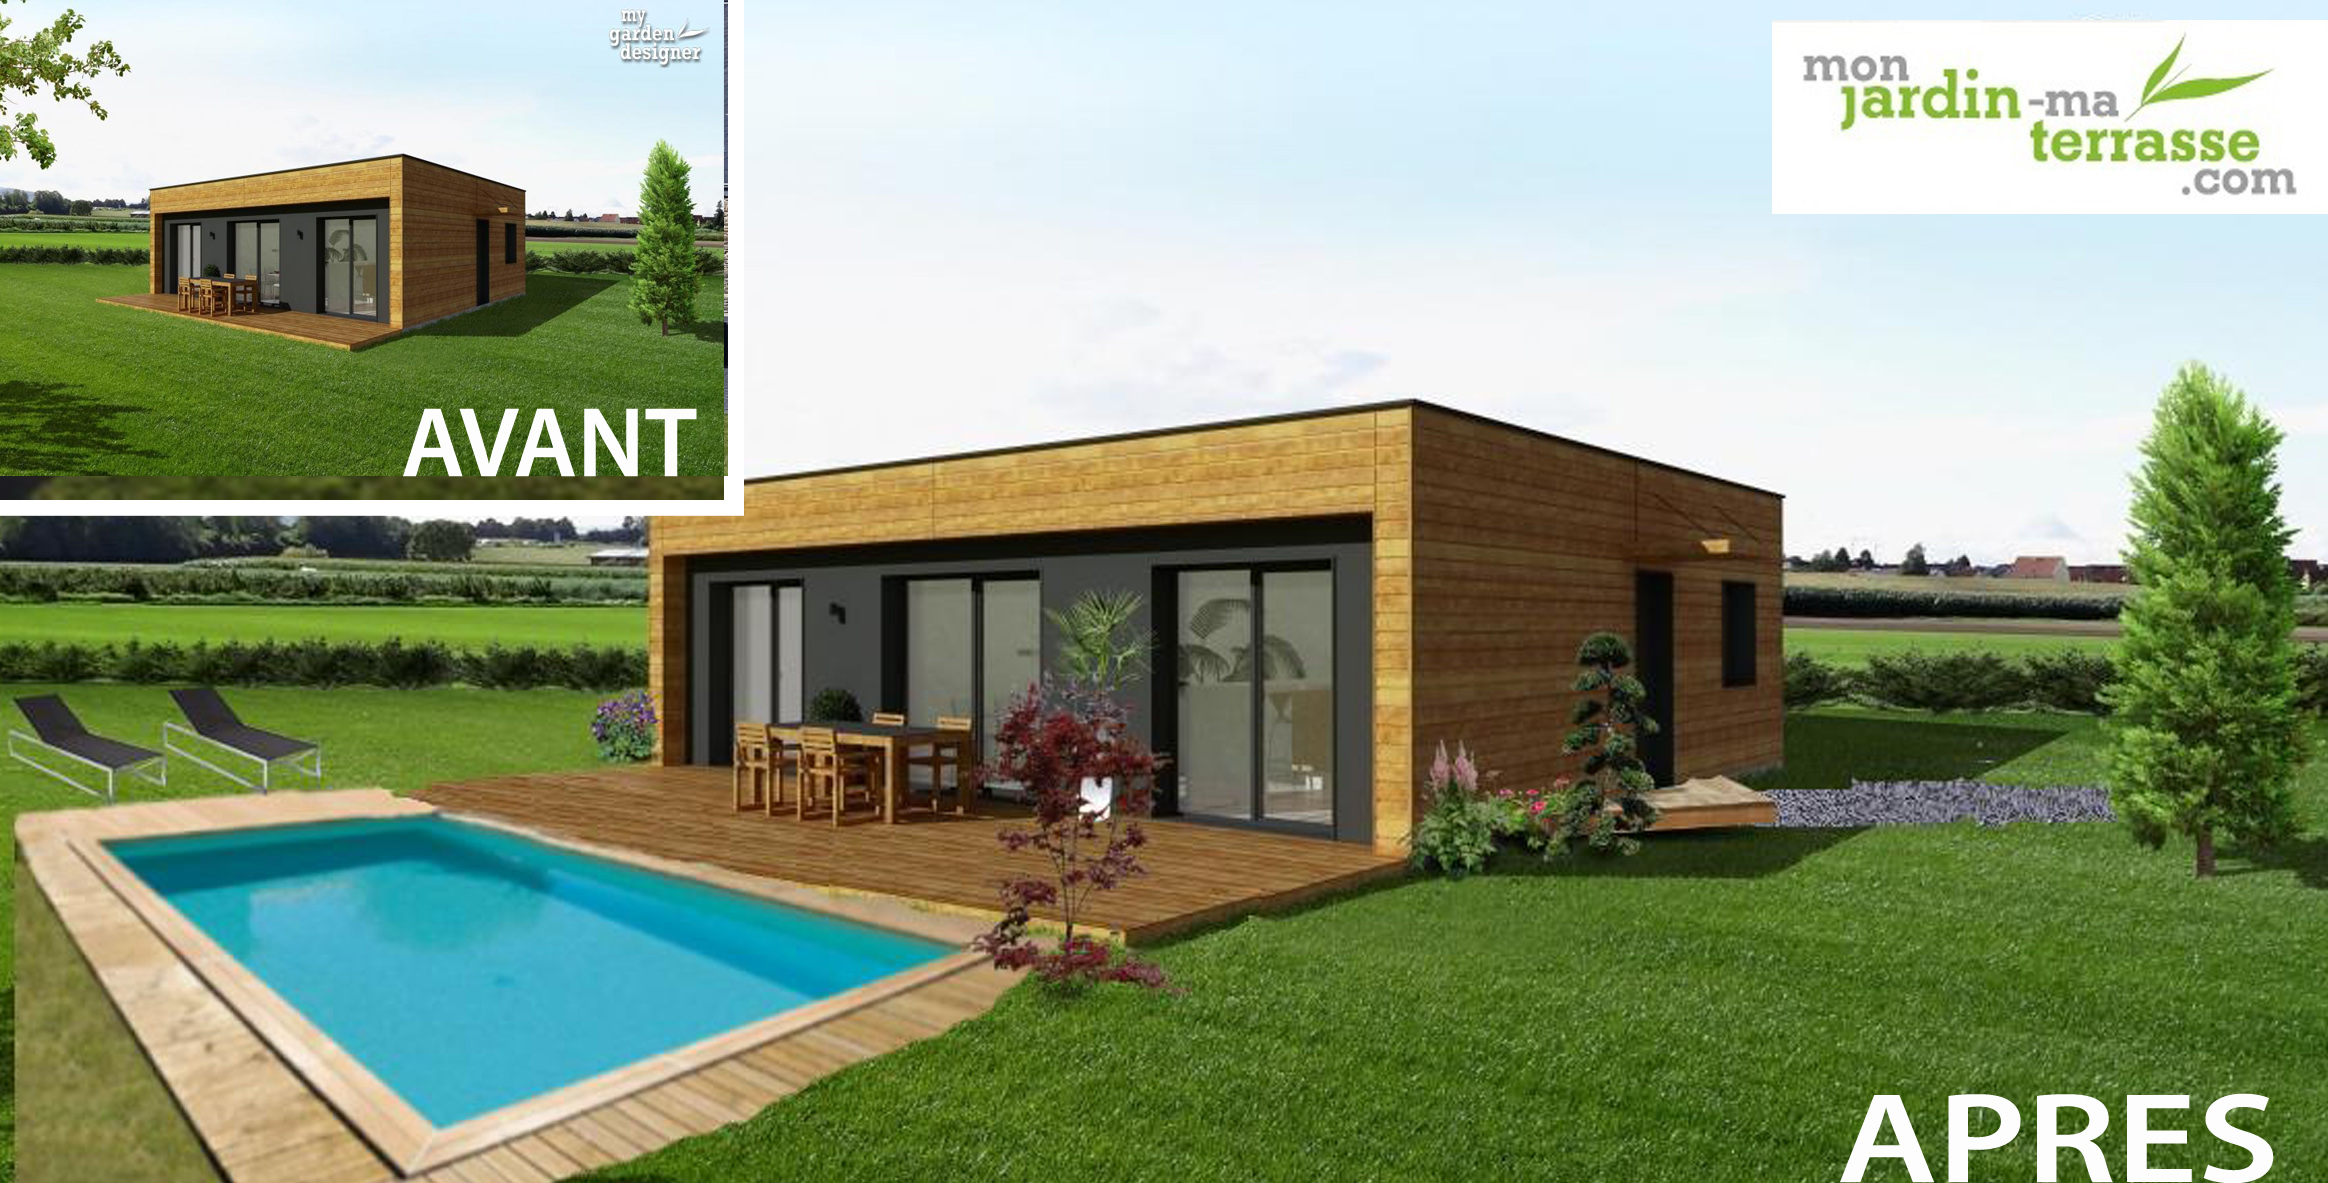 Am nagement ext rieur d une piscine monjardin - Amenagement exterieur piscine ...